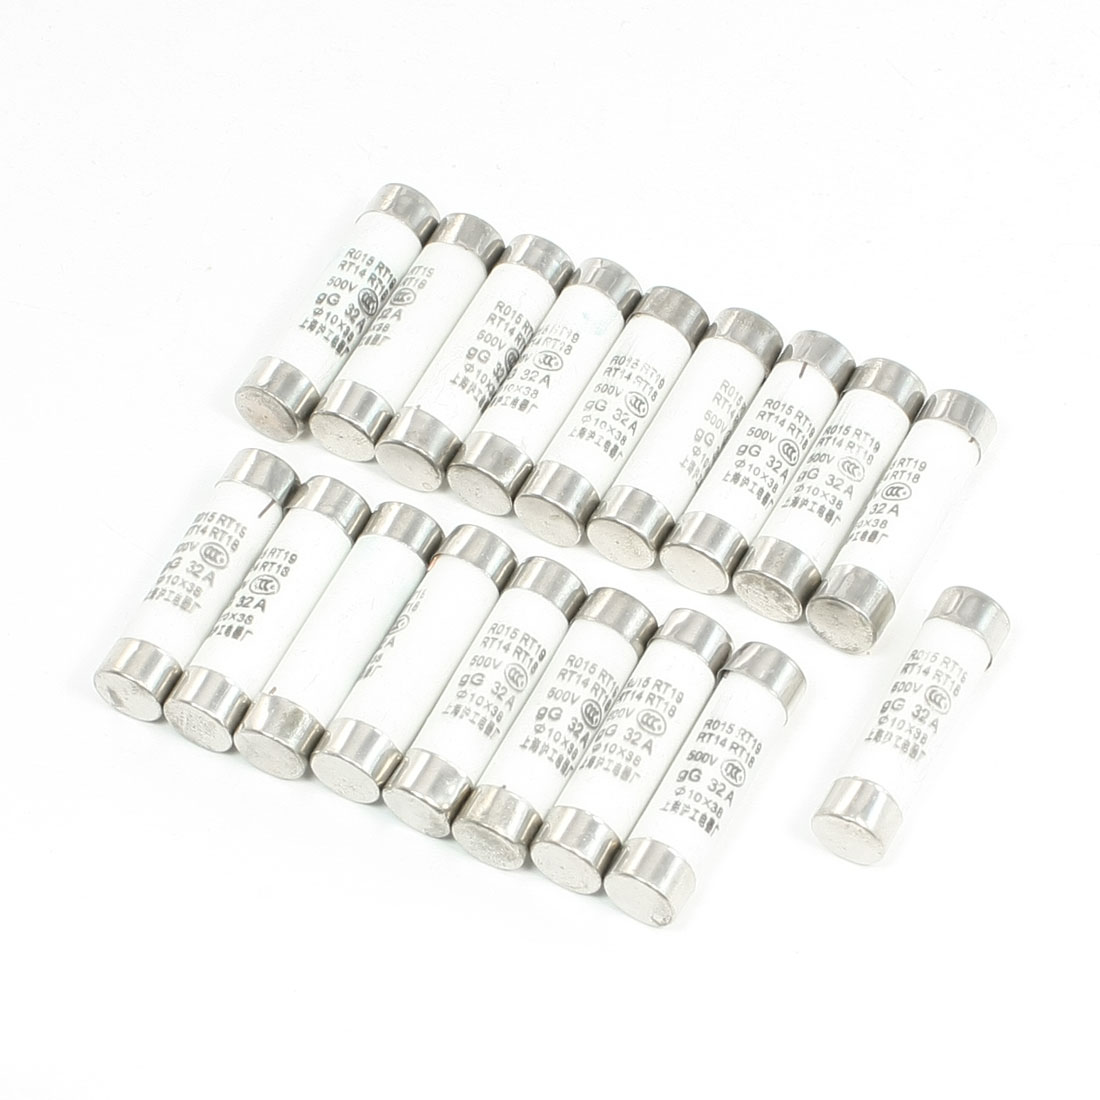 20 Pcs 10mmx38mm Quick Fast Blow Ceramic Fuse Links 32A 500VAC RT19 RT14 RT18